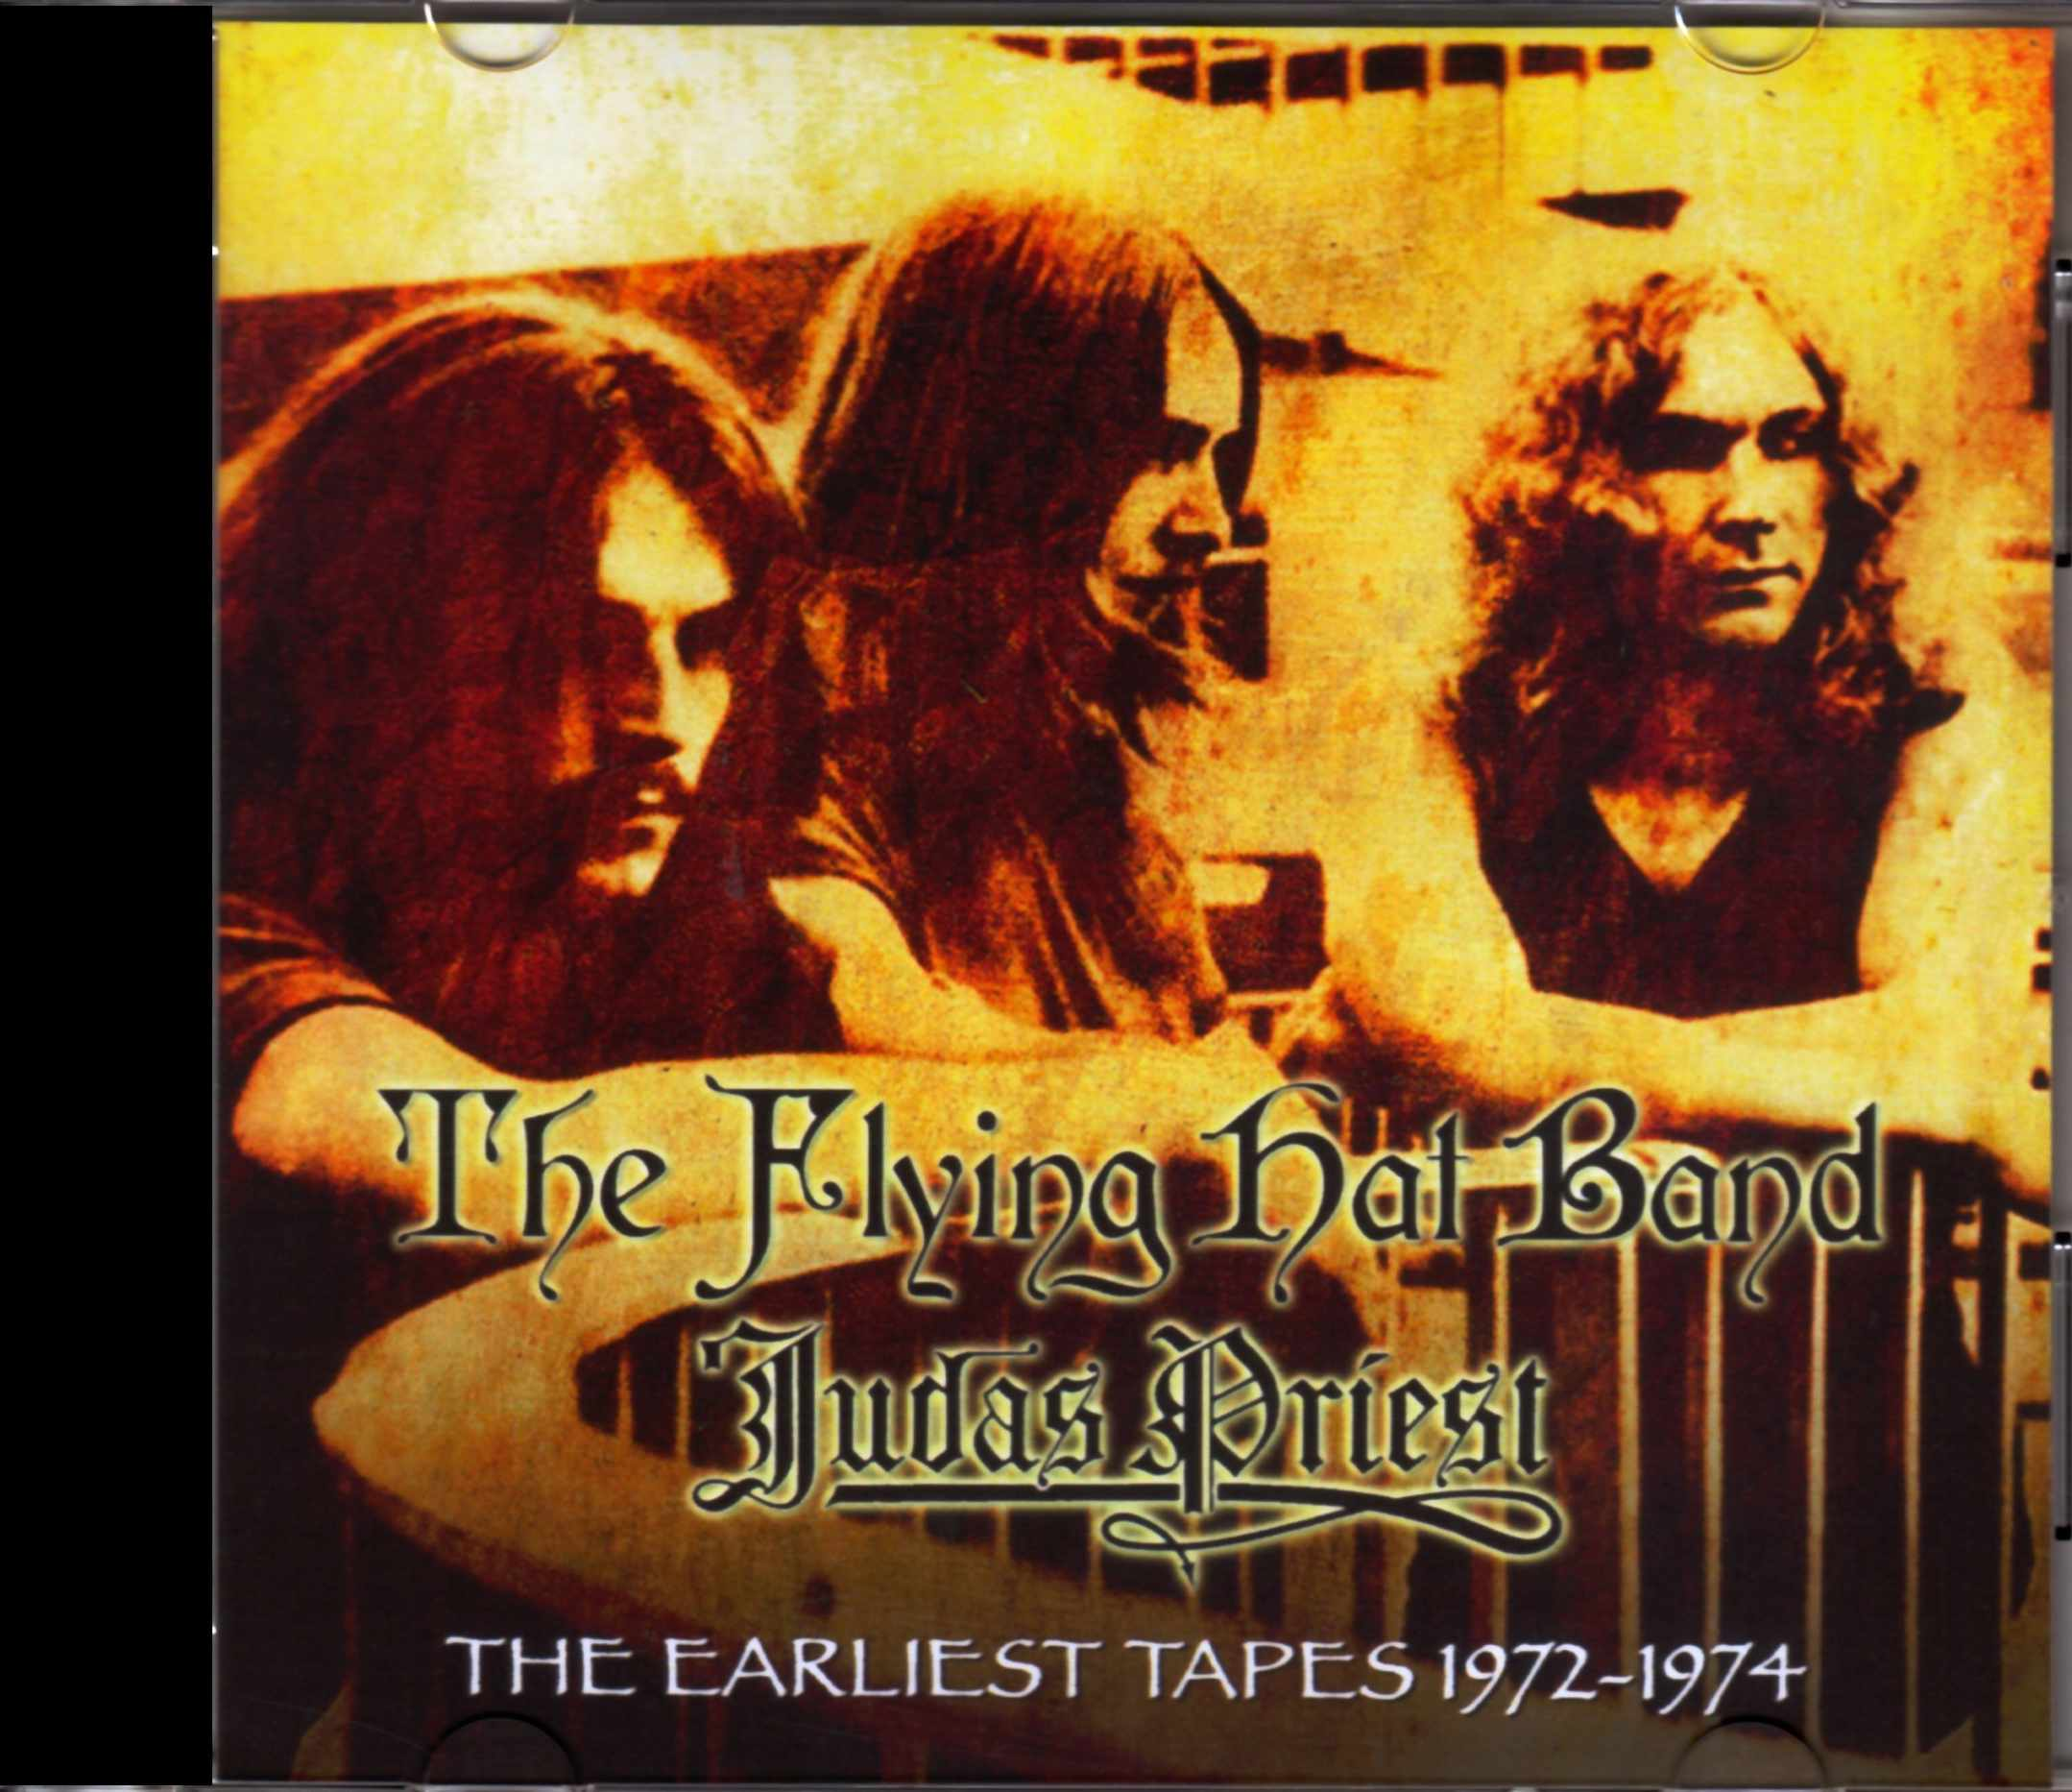 Judas Priest,Flying Hat Band ジューダス・プリースト/Earliest Tapes 1972-1974